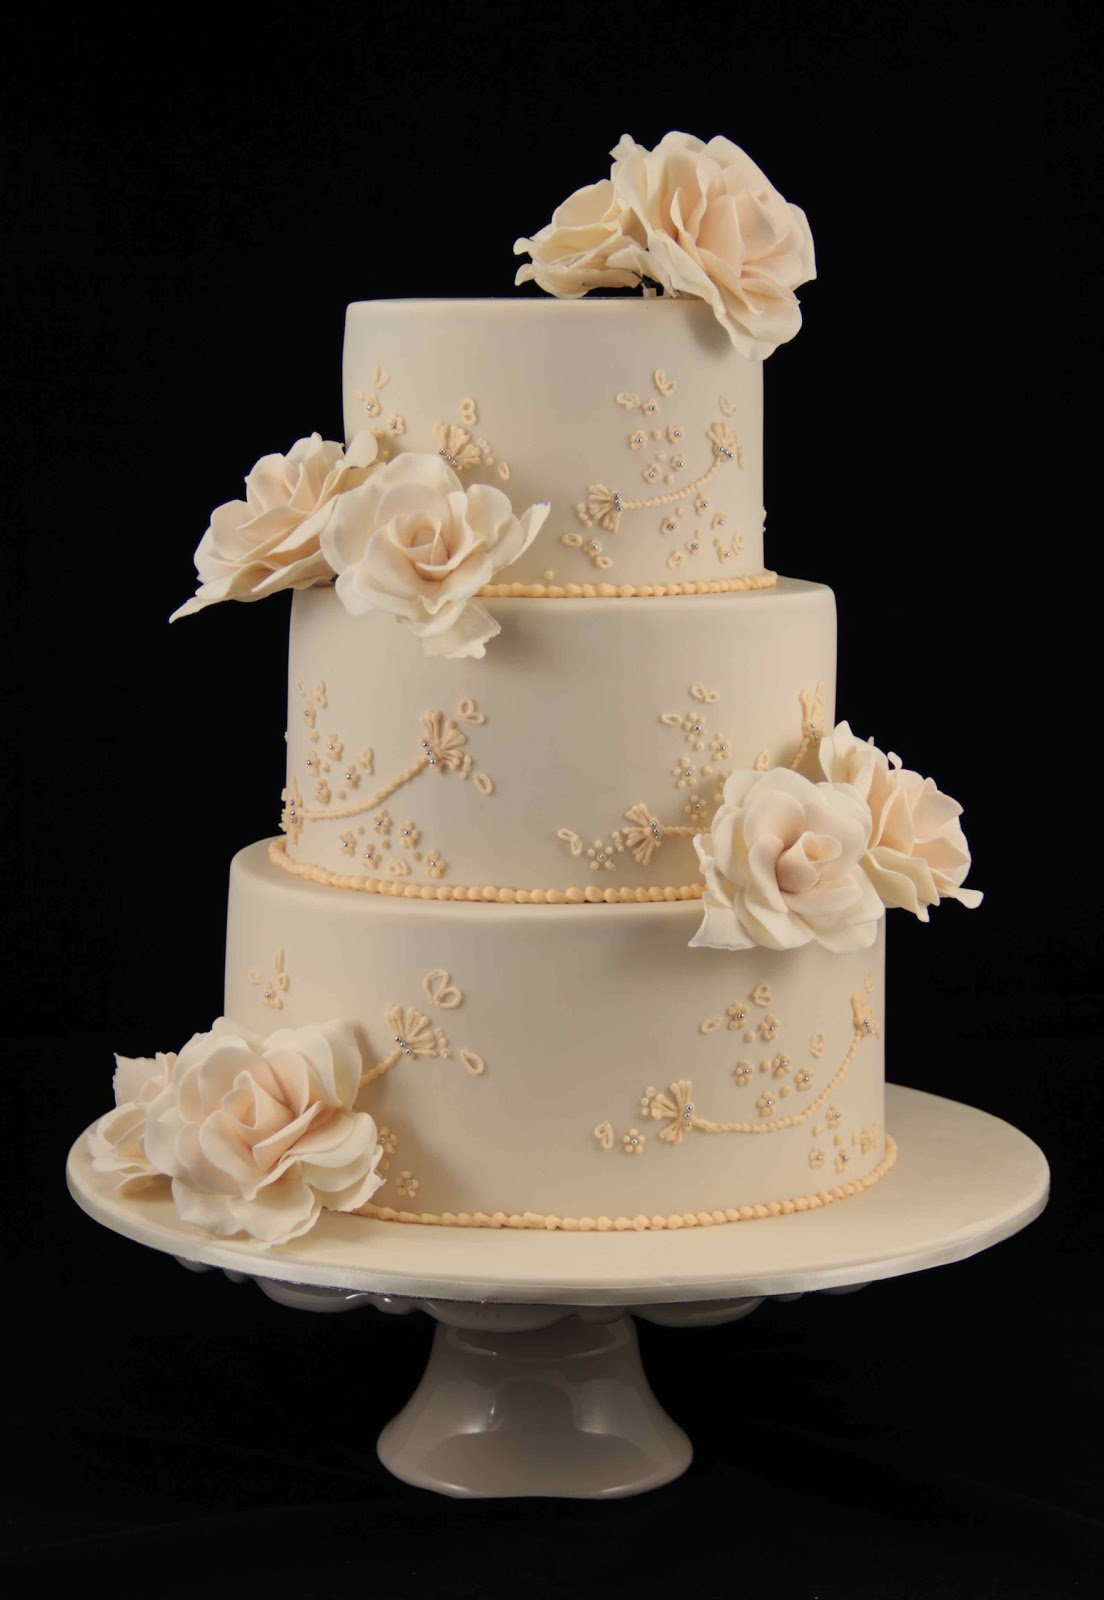 The Wedding Cake Model